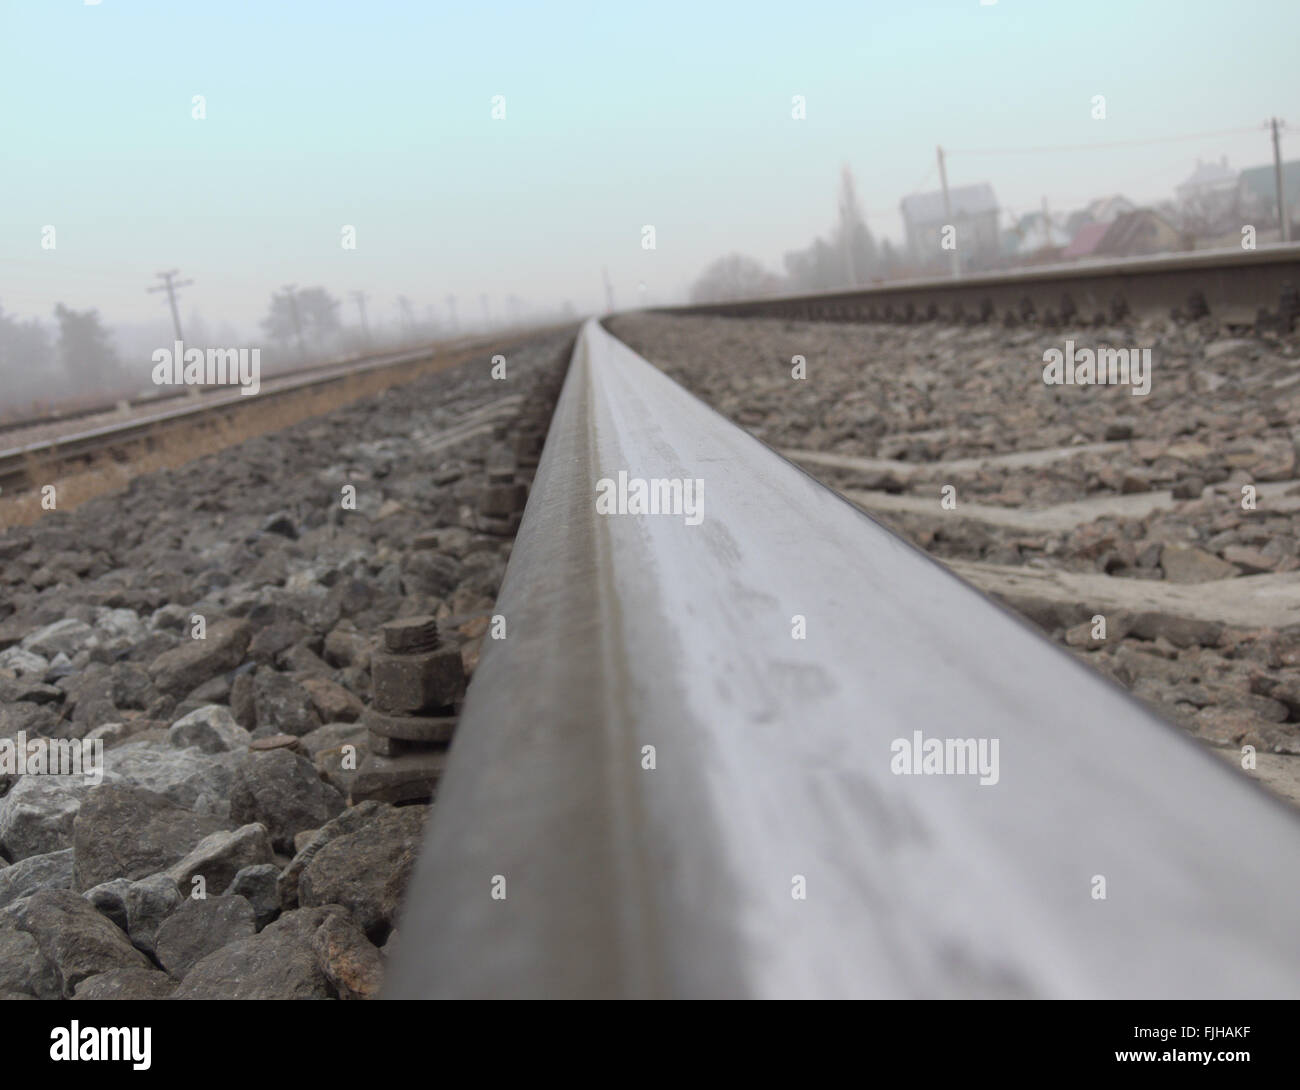 The rails, stretching to the horizon, photographed by a camera, placed on the rail head - Stock Image